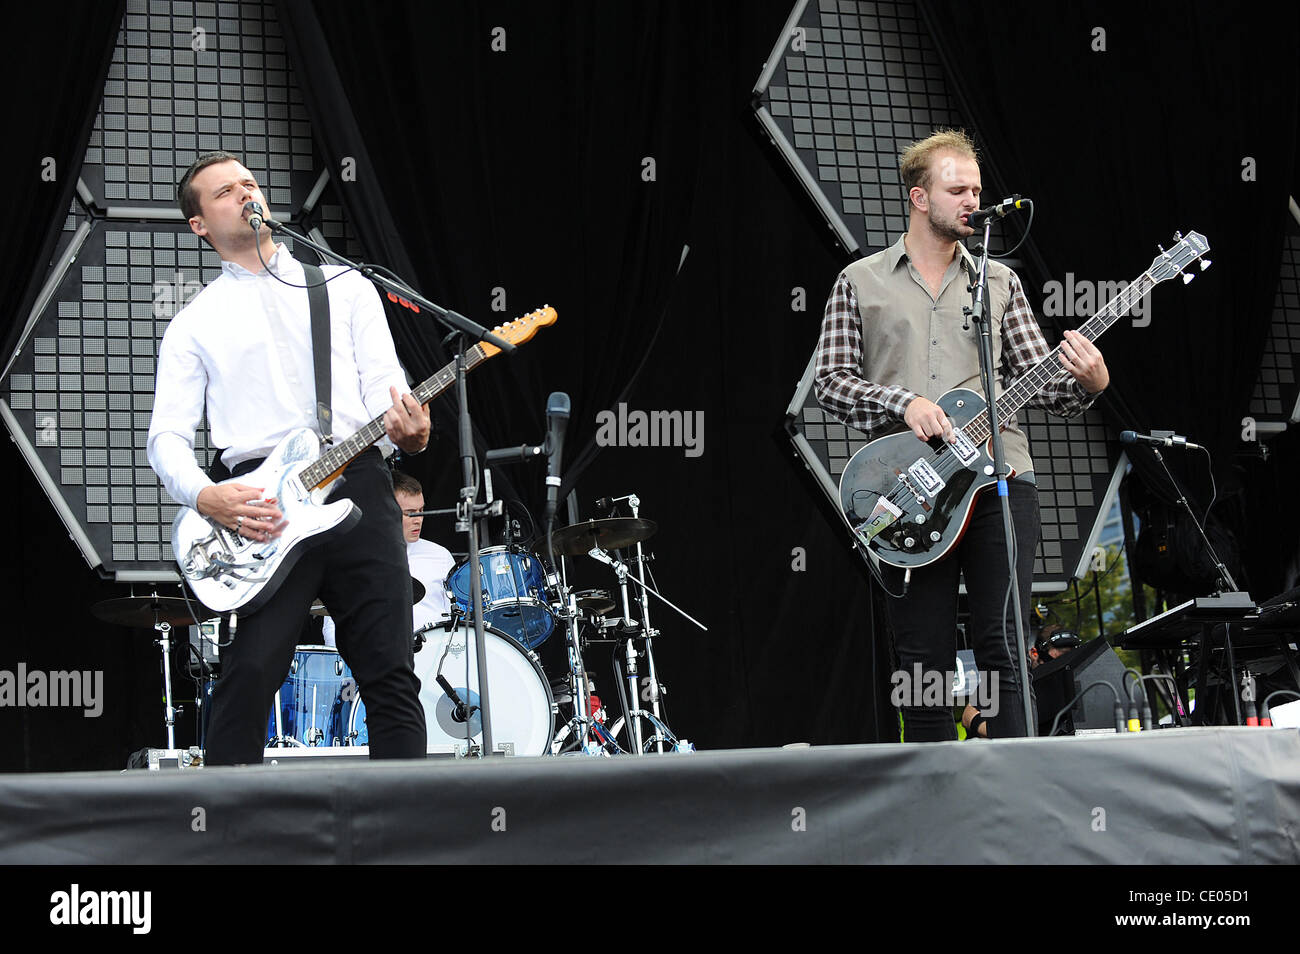 Aug 5, 2011 - Chicago, Illinois; USA - Singer / Guitarist HARRY McVEIGH and Bass Guitarist CHARLES CAVE of the band - Stock Image